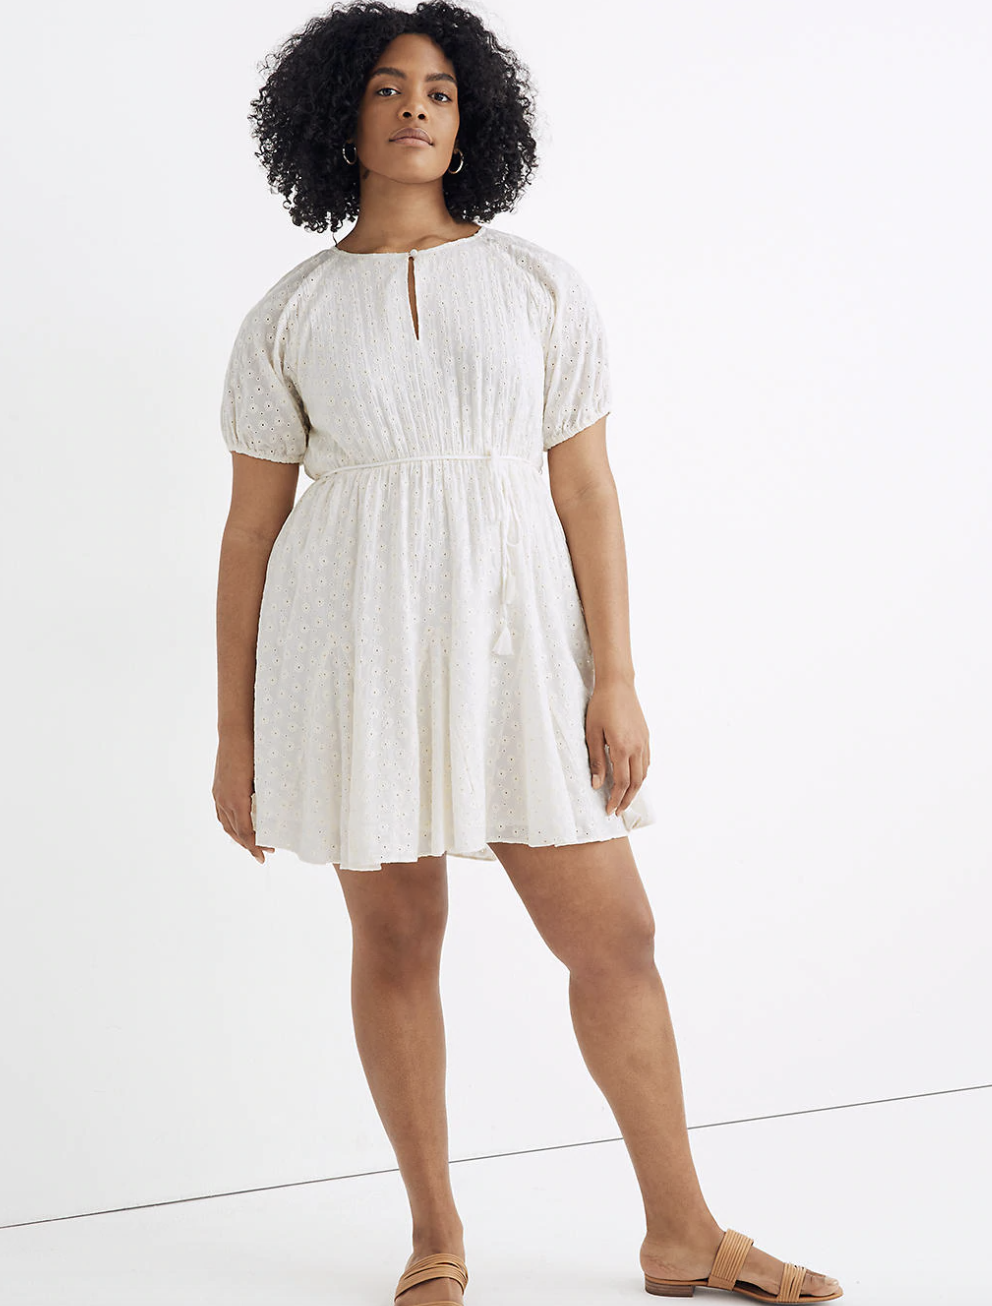 a model wearing the eyelet dress in white